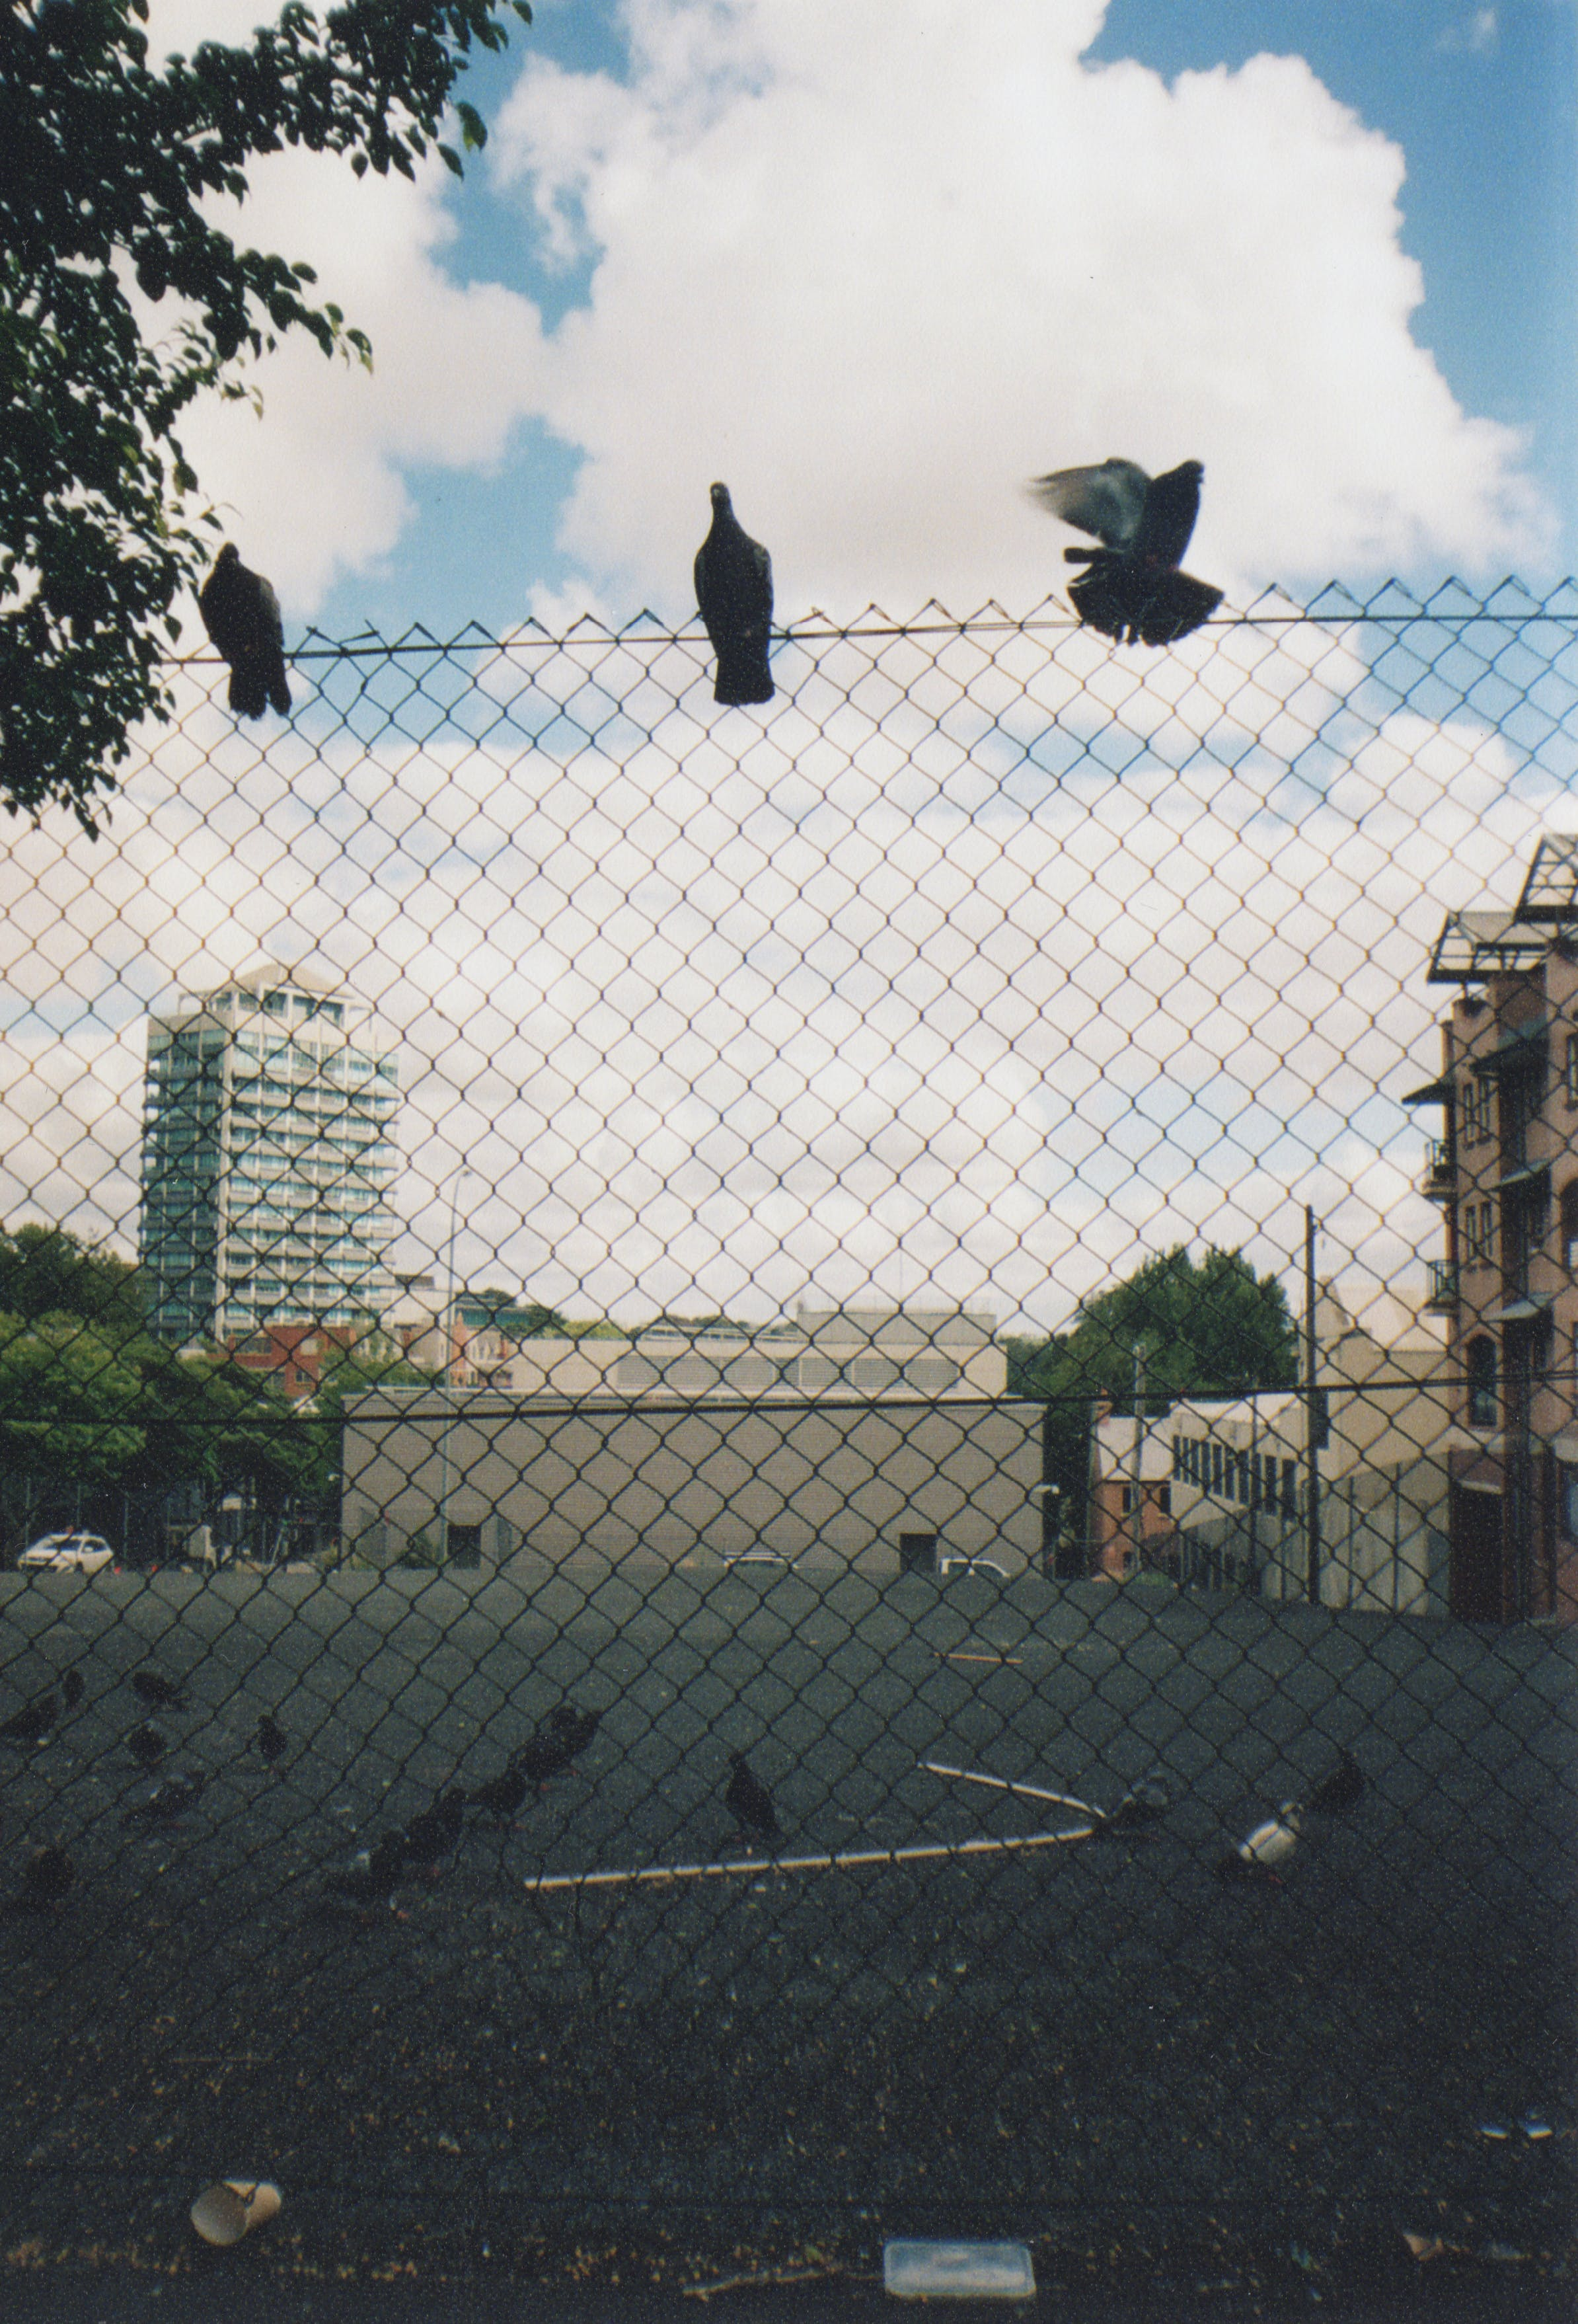 Free stock photo of 35mm, birds, car park, chain link fence